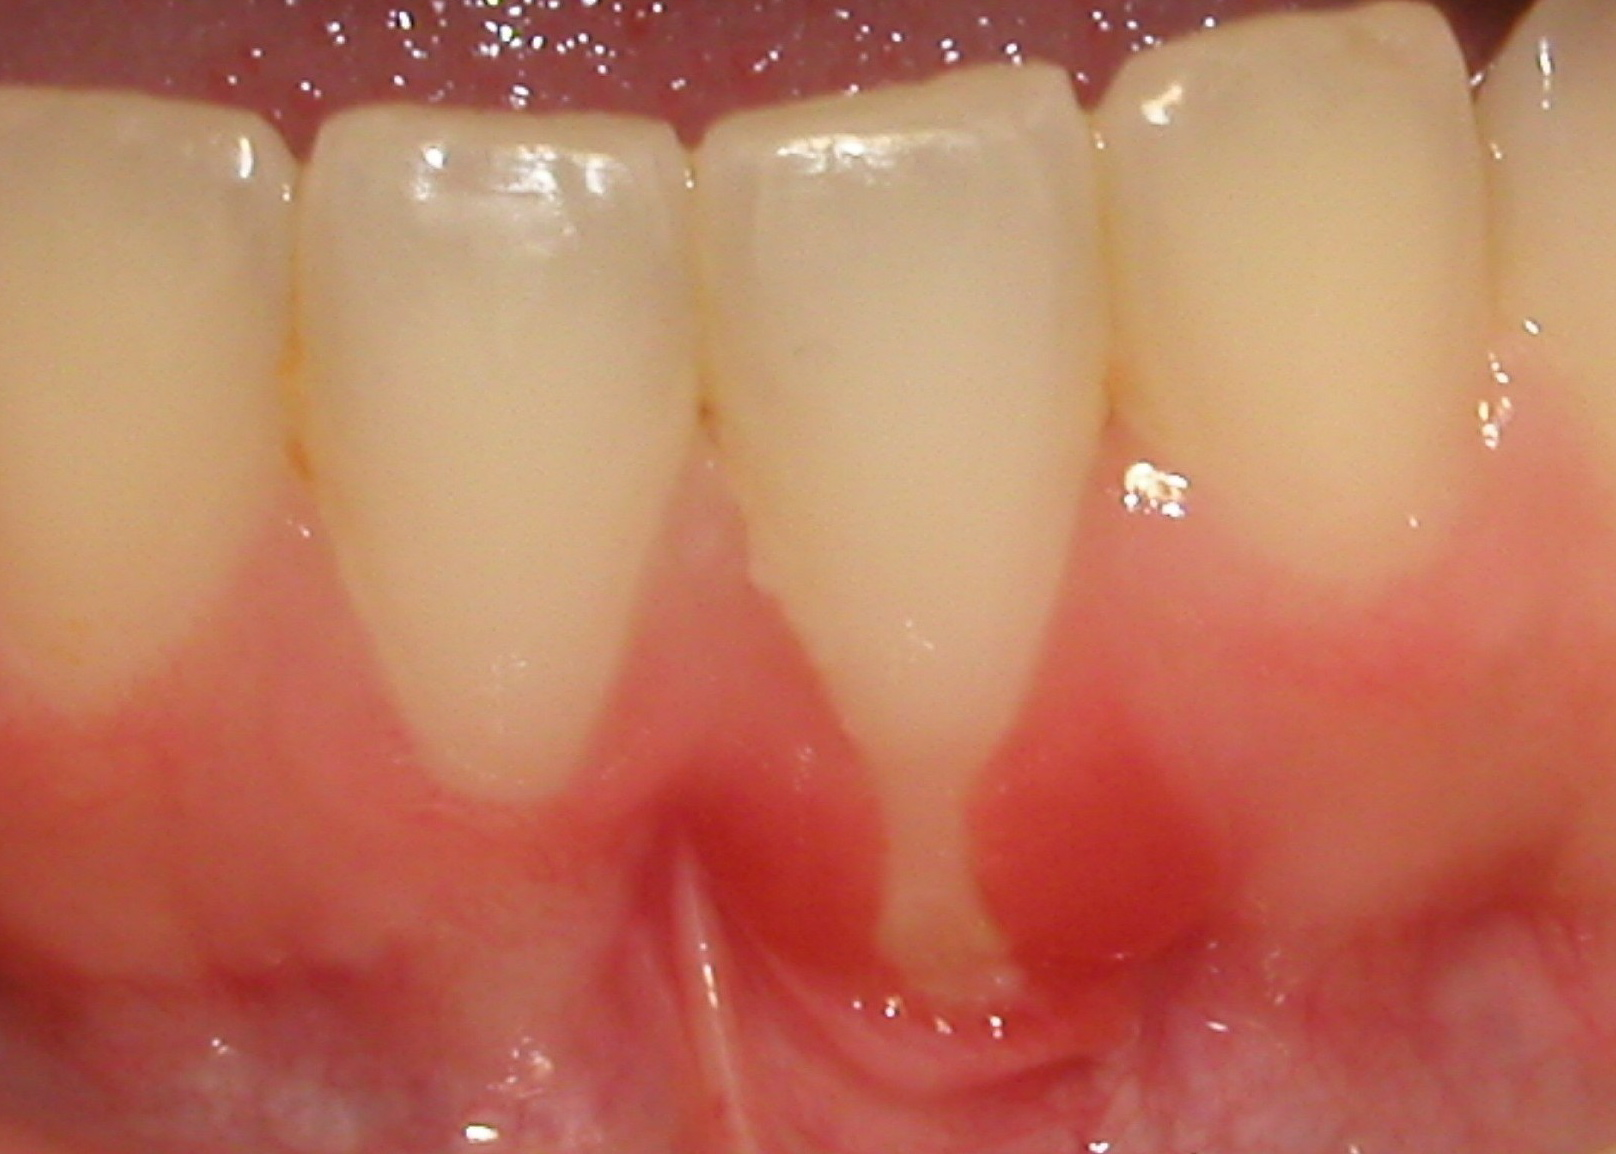 Picture shows gingival recession.